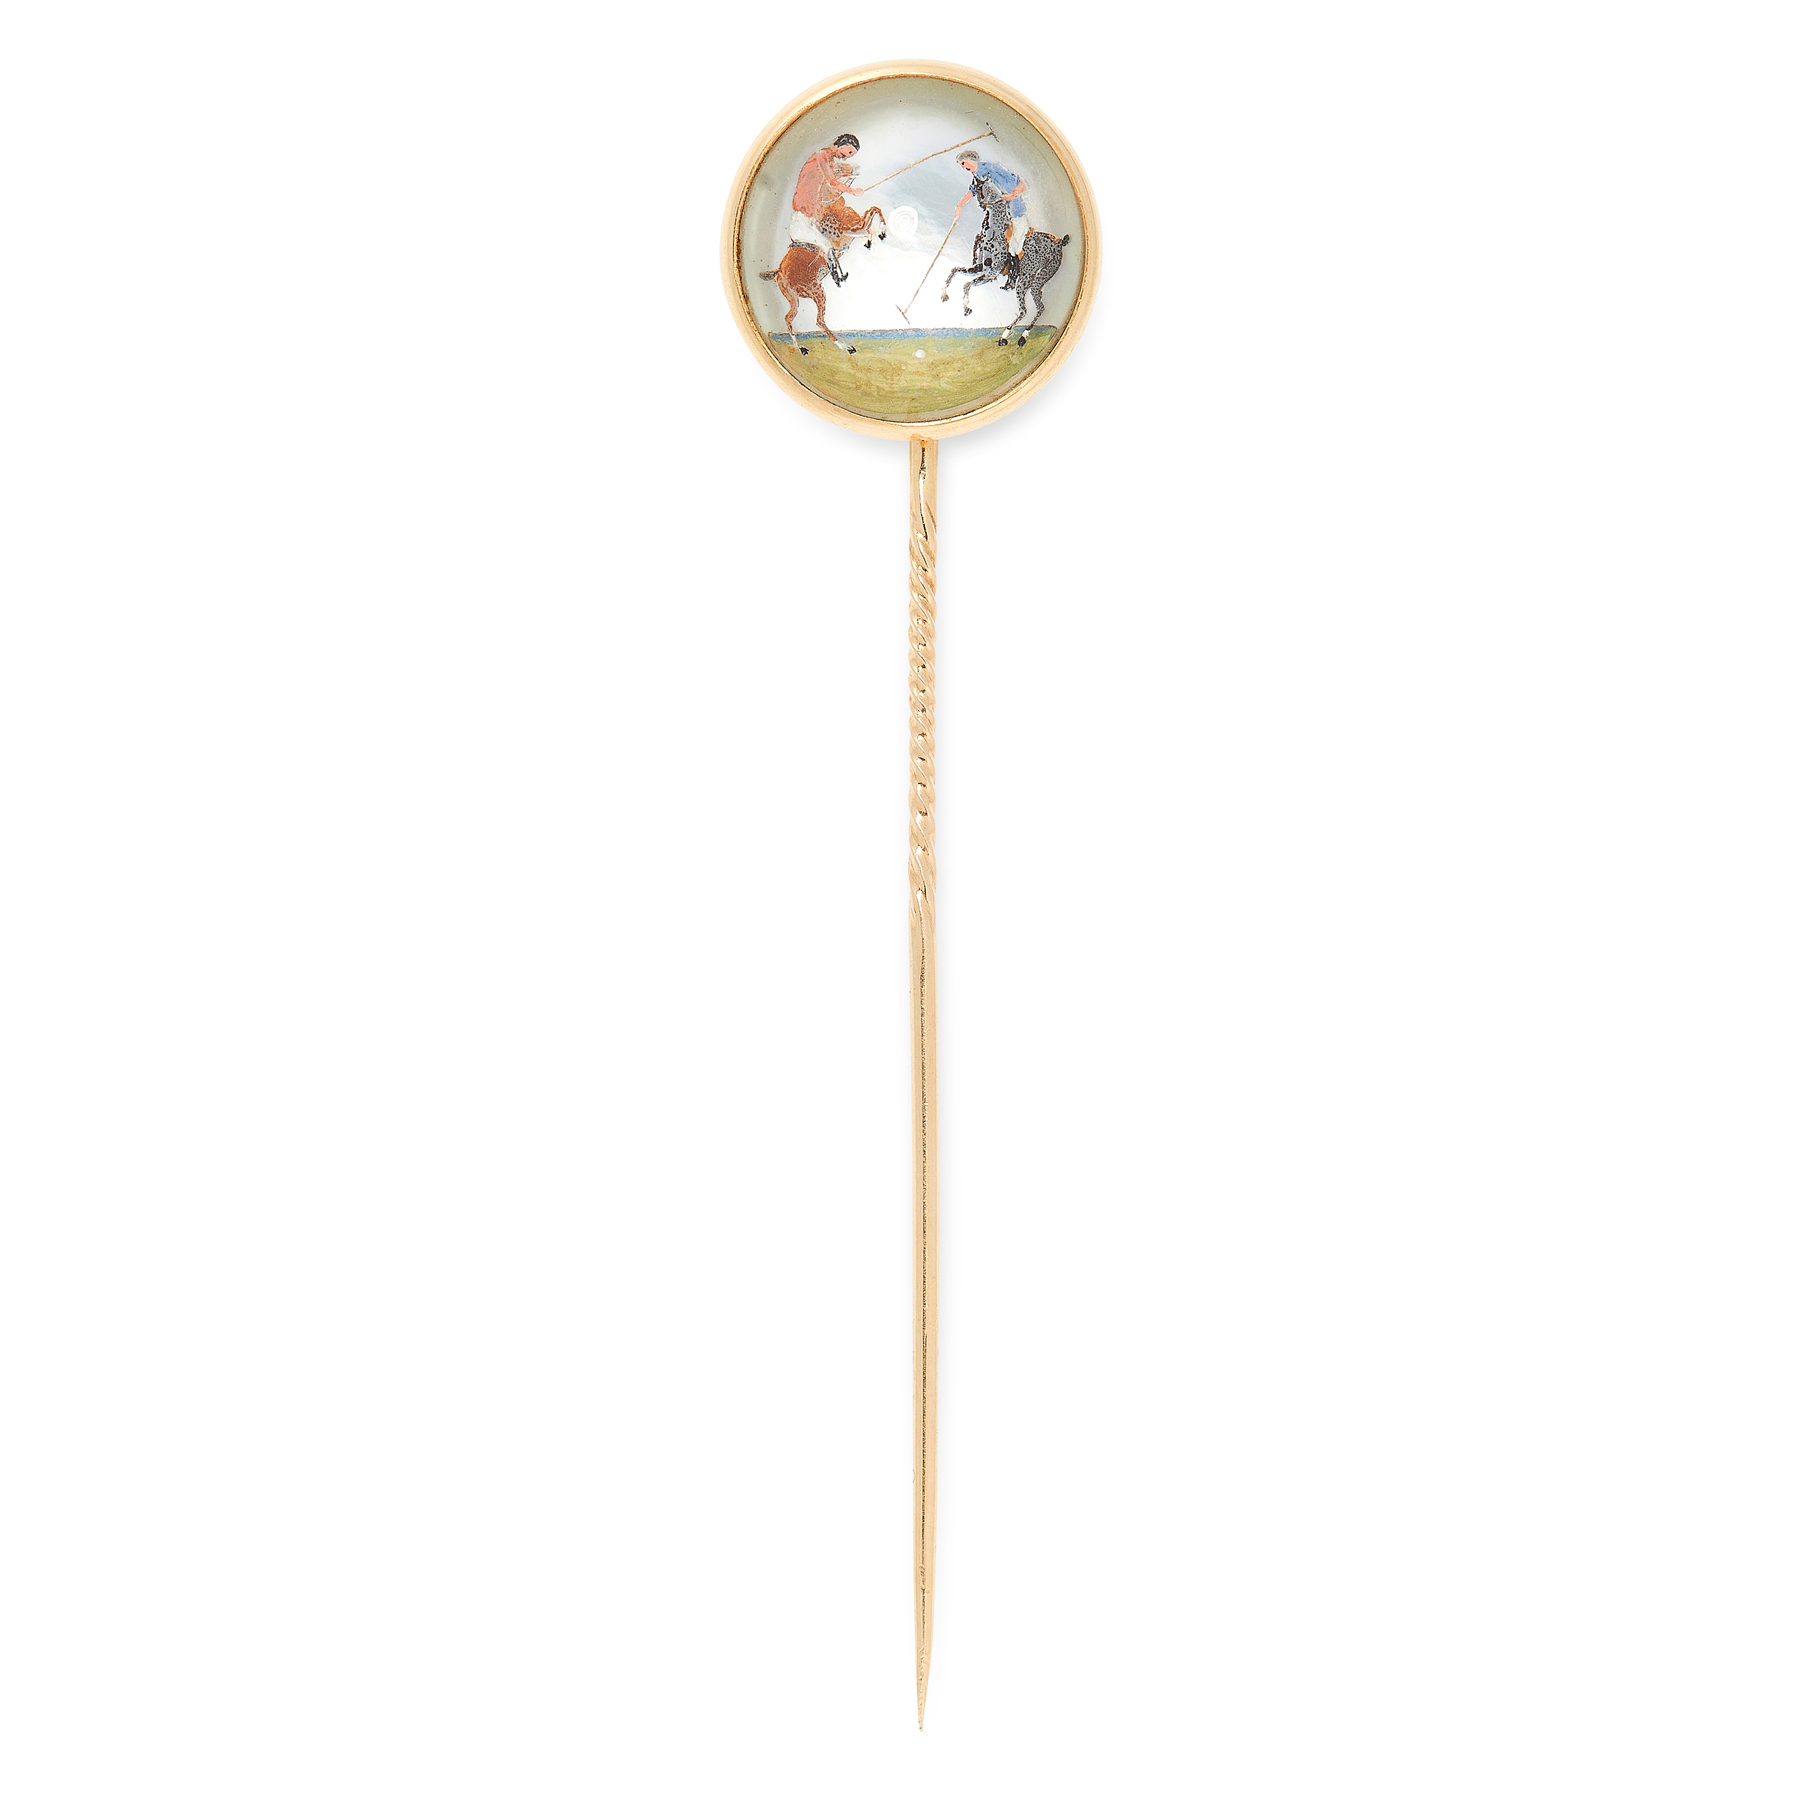 AN ANTIQUE ESSEX CRYSTAL POLO TIE PIN in yellow gold, set with a circular reverse carved intaglio,